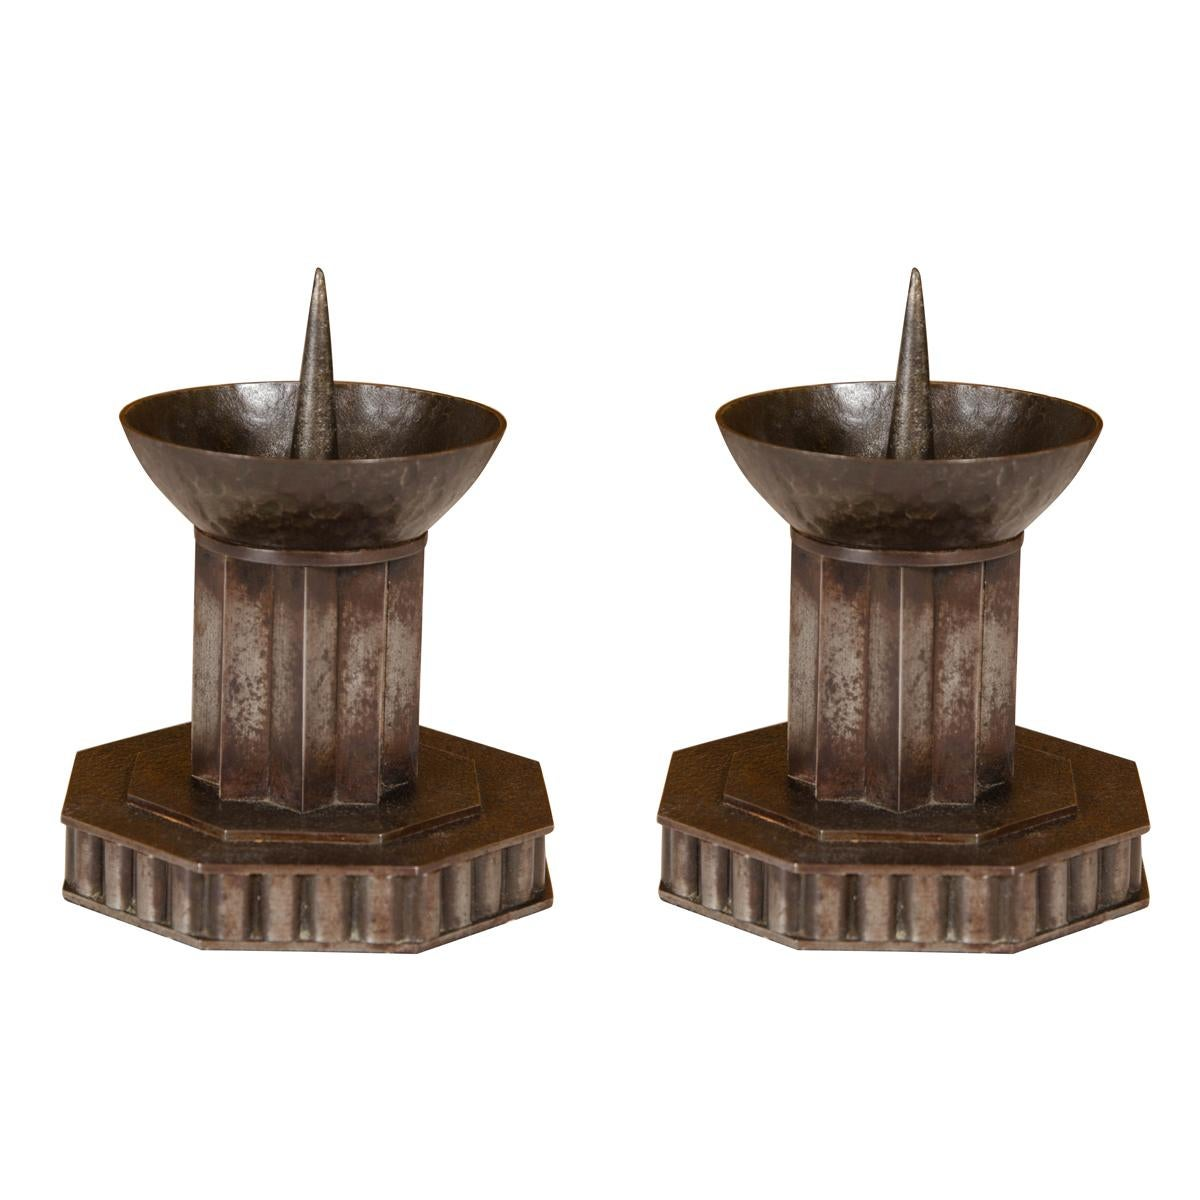 Pair of Patinated Iron Candlesticks